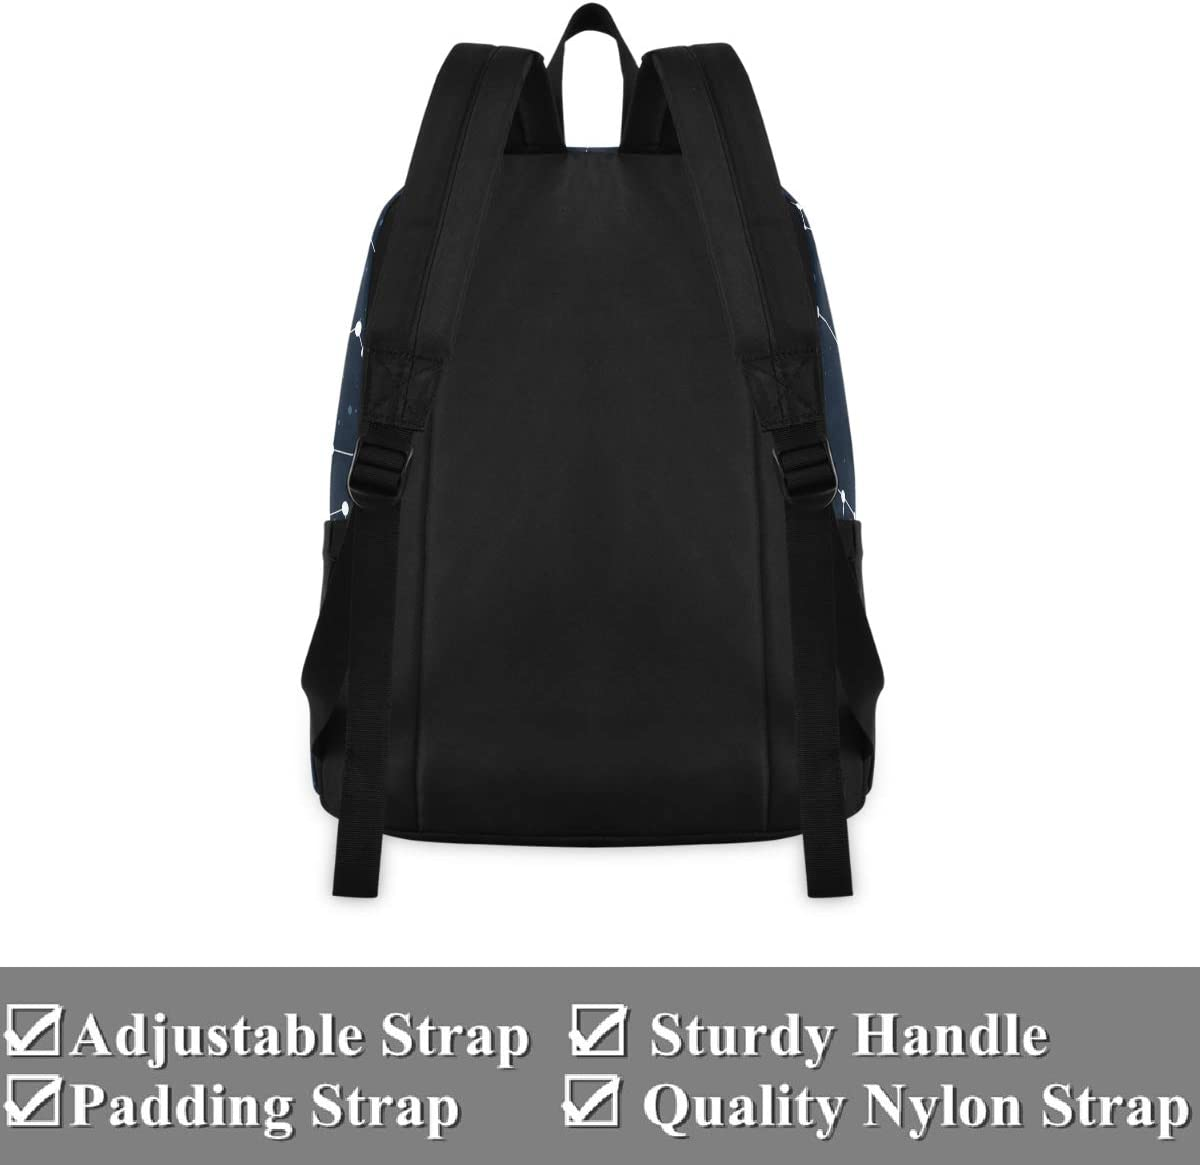 Starry Anti Theft Backpack for Women Men Camping Hiking Cycling Biking Fits up to 15.6 Inch Laptop Travel Backpack Lightweight Bookbag